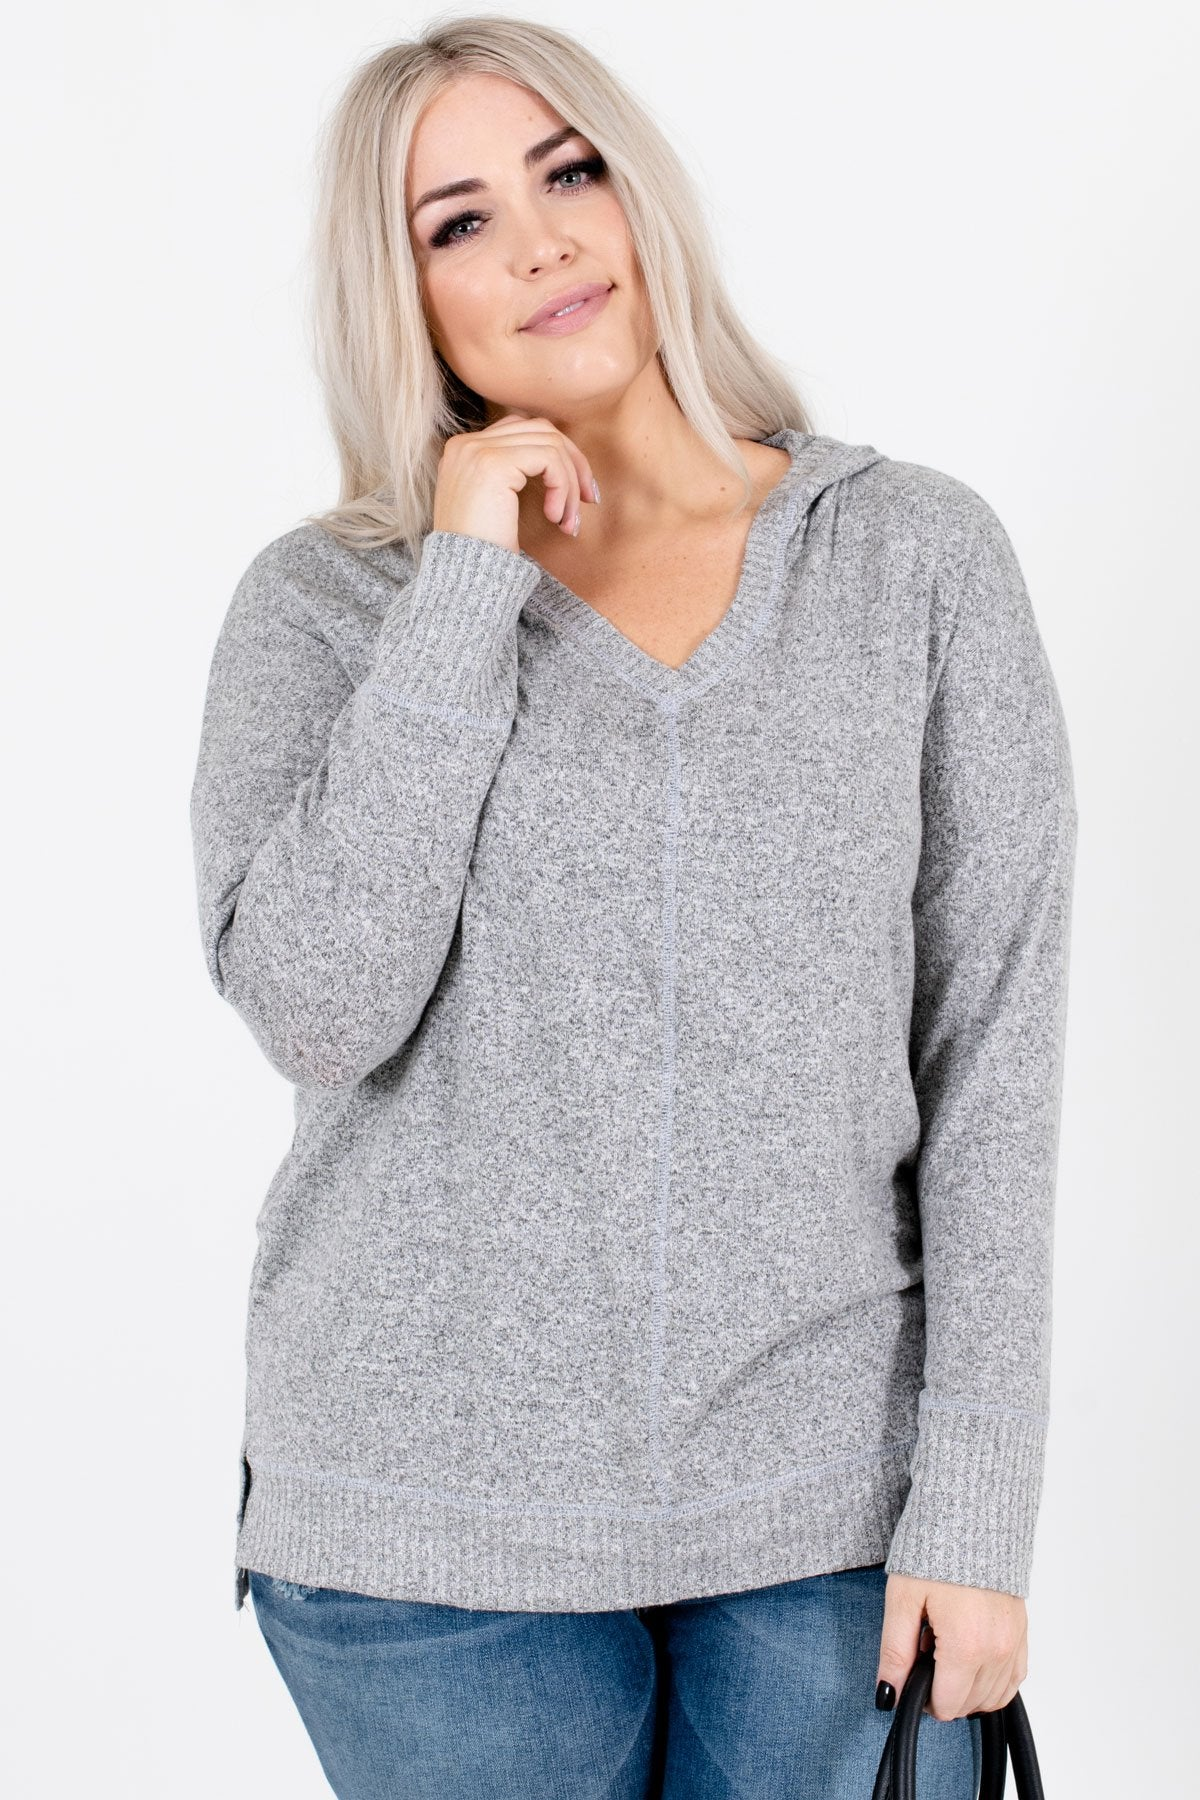 Heather Gray Split High-Low Hem Boutique Tops for Women